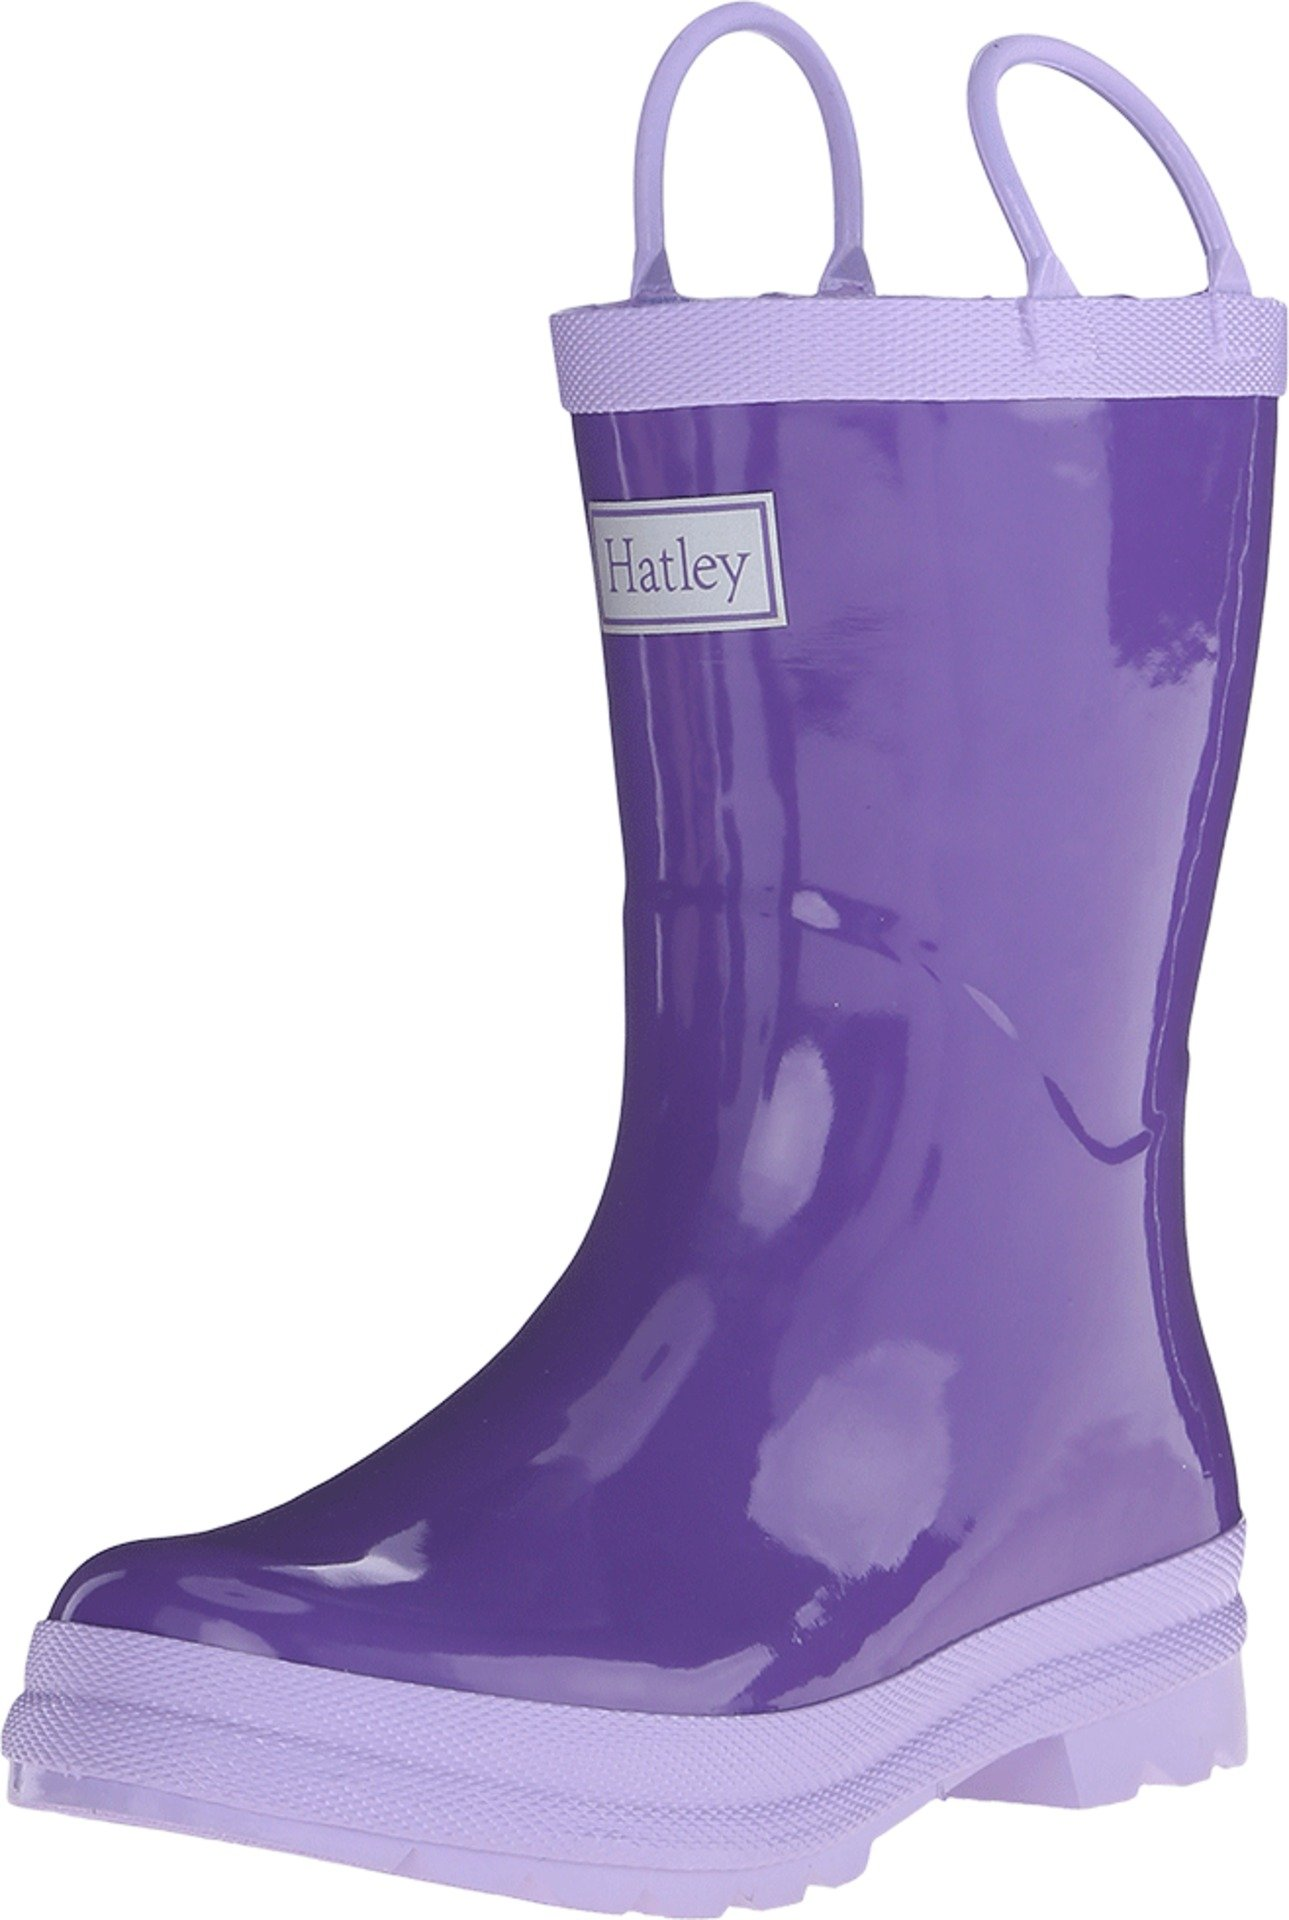 Hatley Kids Girl's Purple & Lilac Rainboots (Toddler/Little Kid) Purple/Lilac Boot 10 Toddler M